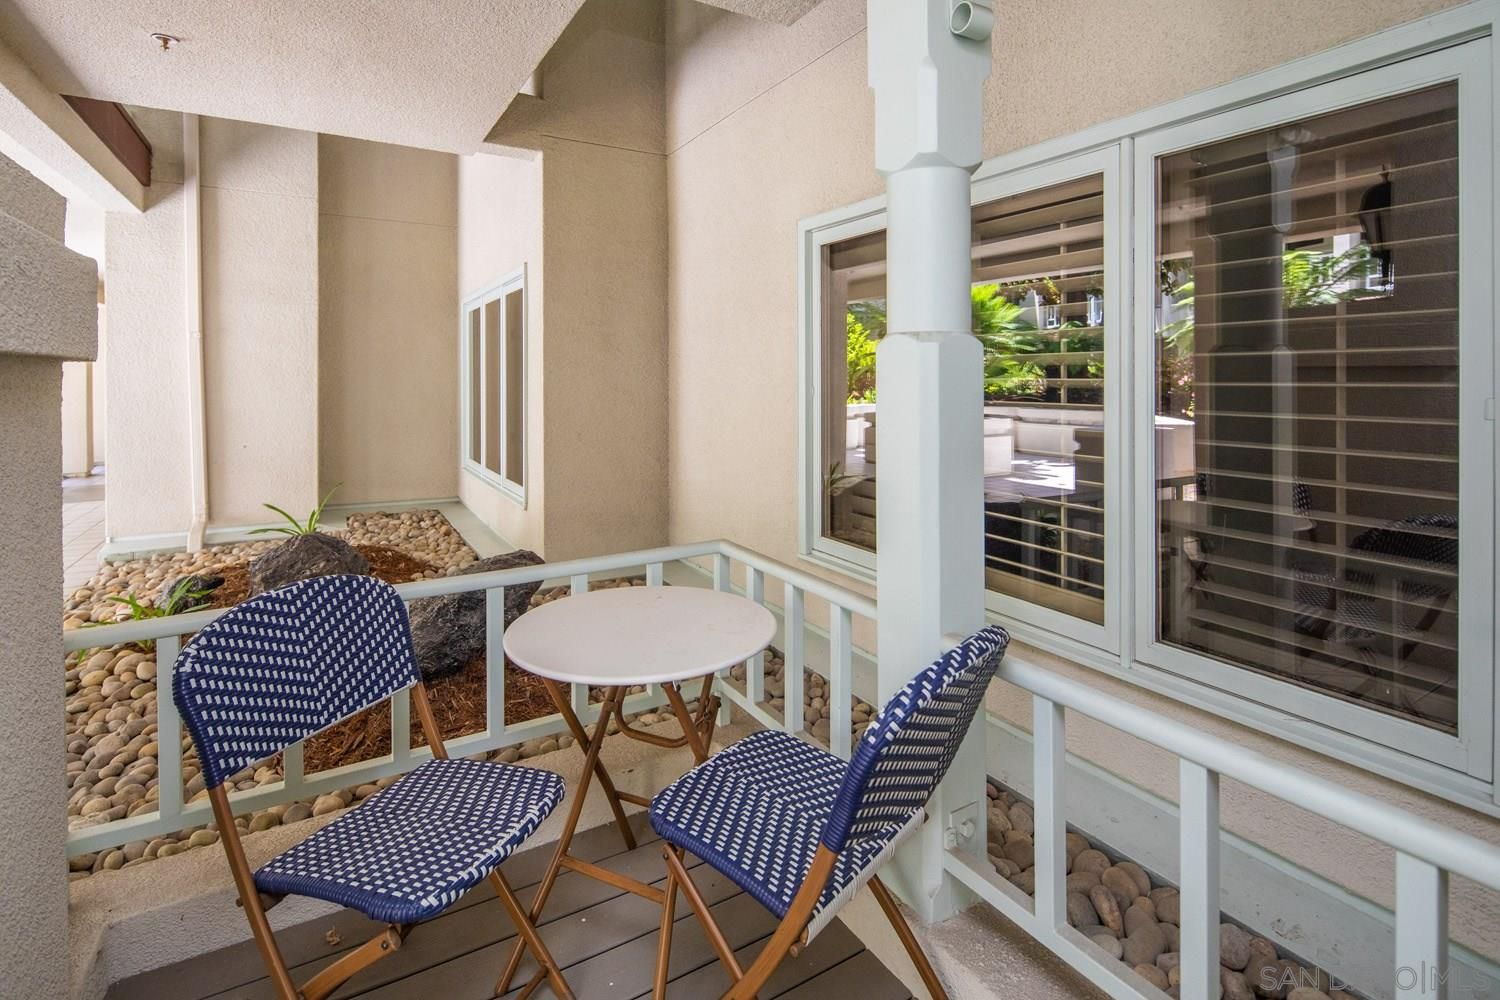 Main Photo: CORONADO VILLAGE Condo for sale : 2 bedrooms : 1099 1st Street #117 in Coronado